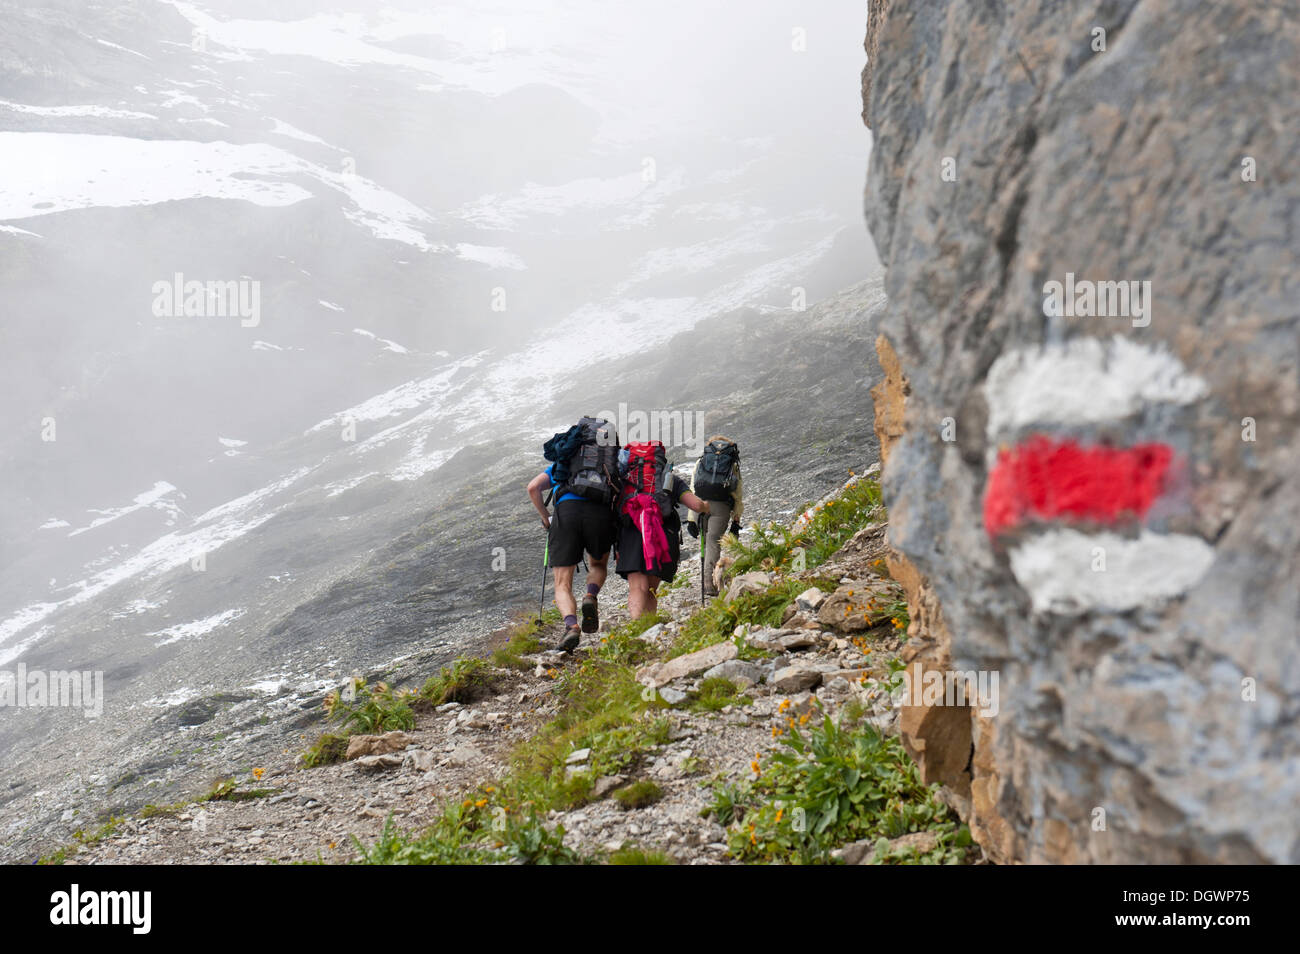 Red and white markings on rocks, Bear Trek hiking trail, hikers on the way up to the pass in the fog, Pass Hohtürli, Kandersteg - Stock Image